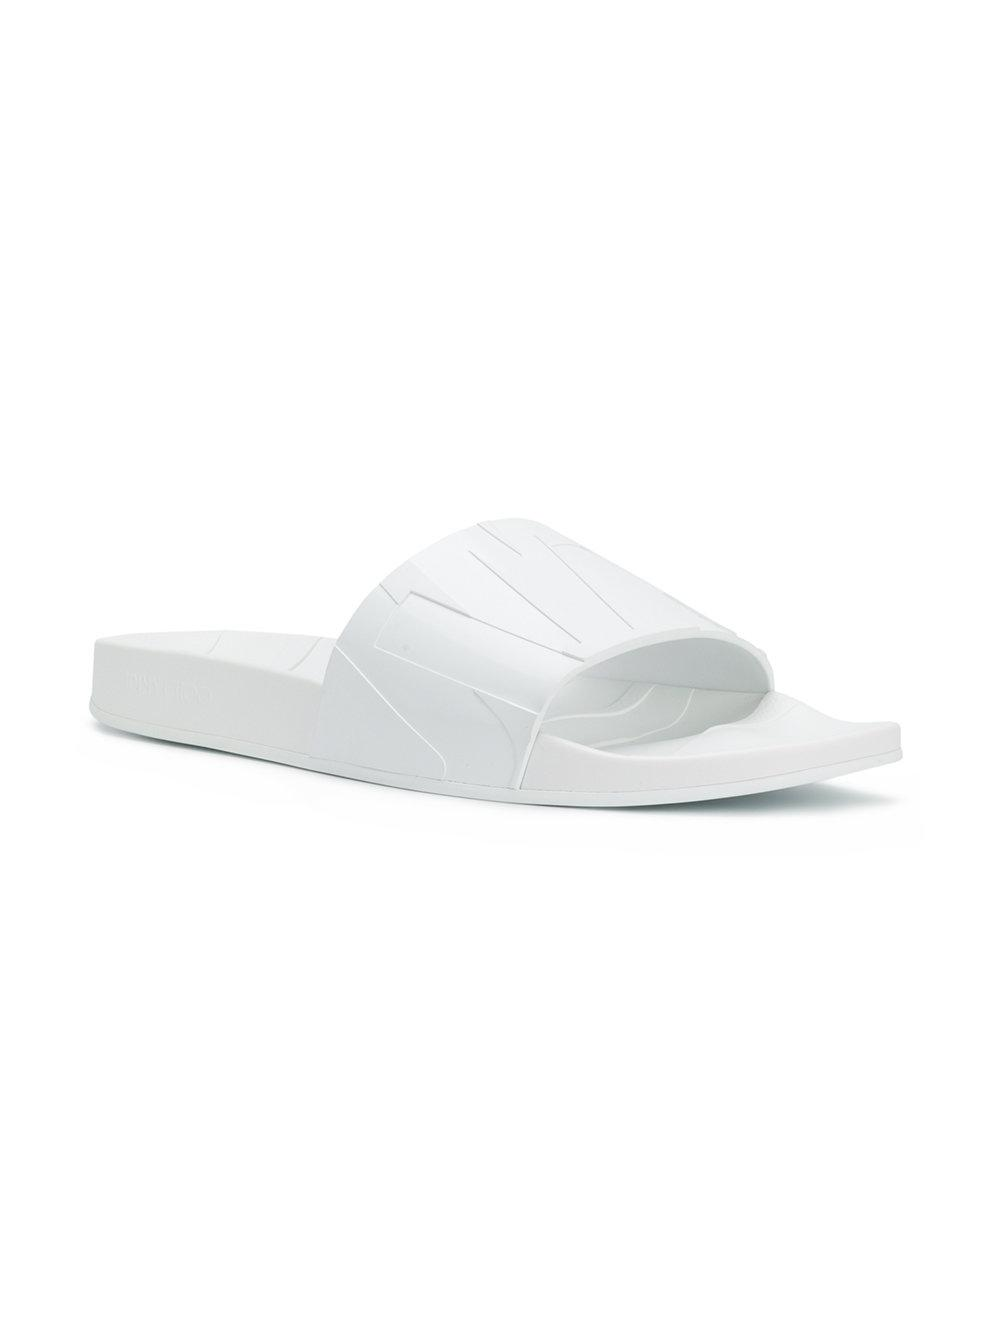 17b8f3ef5984 Lyst - Jimmy Choo Rey m White Rubber Slides in White for Men - Save  67.11864406779661%